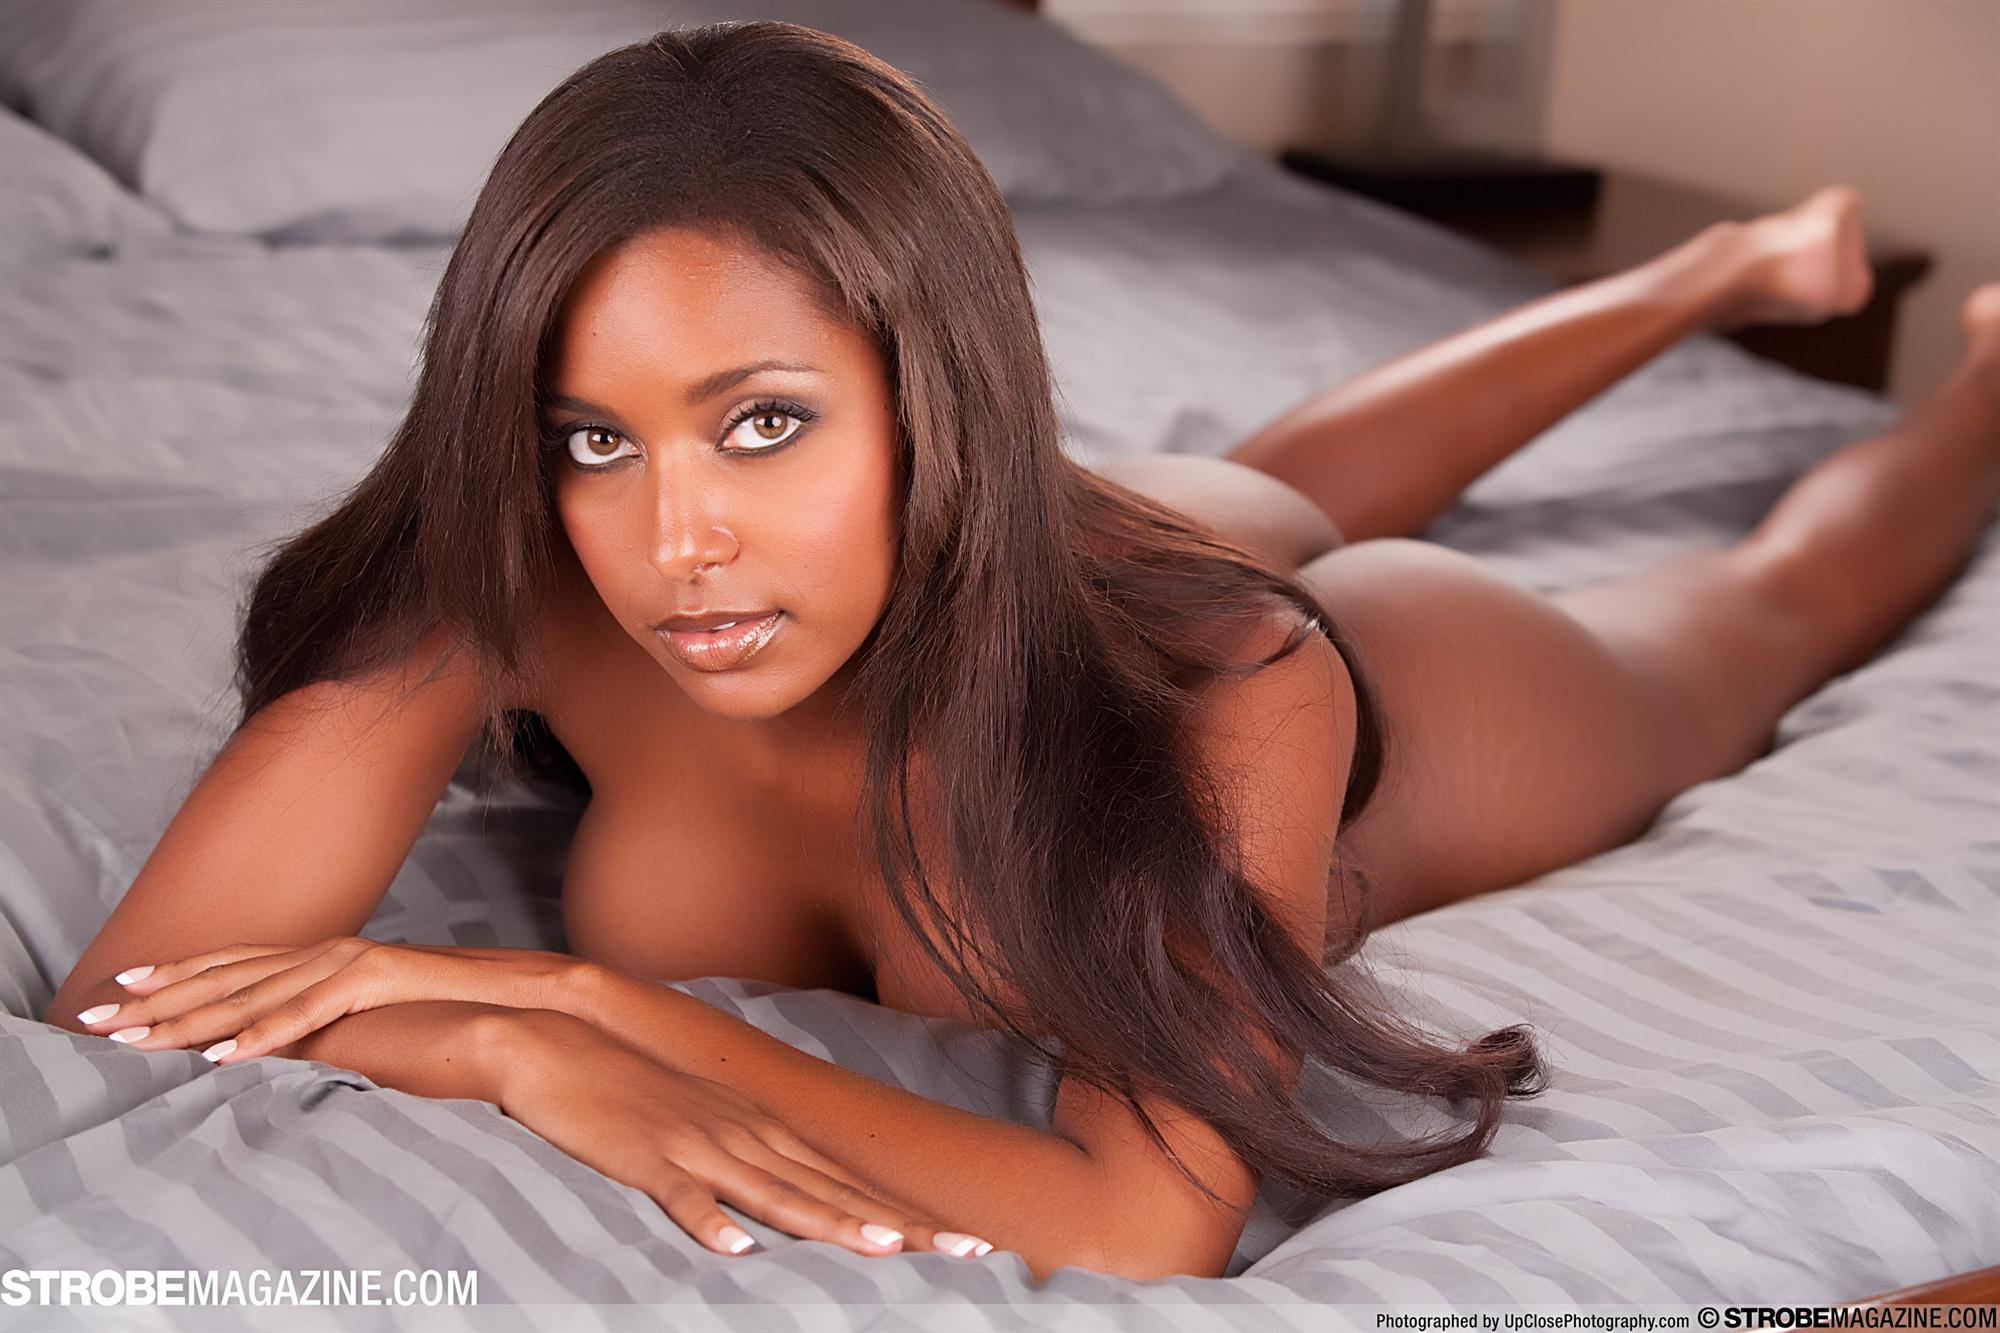 Brandi reed nude pictures in an infinite scroll